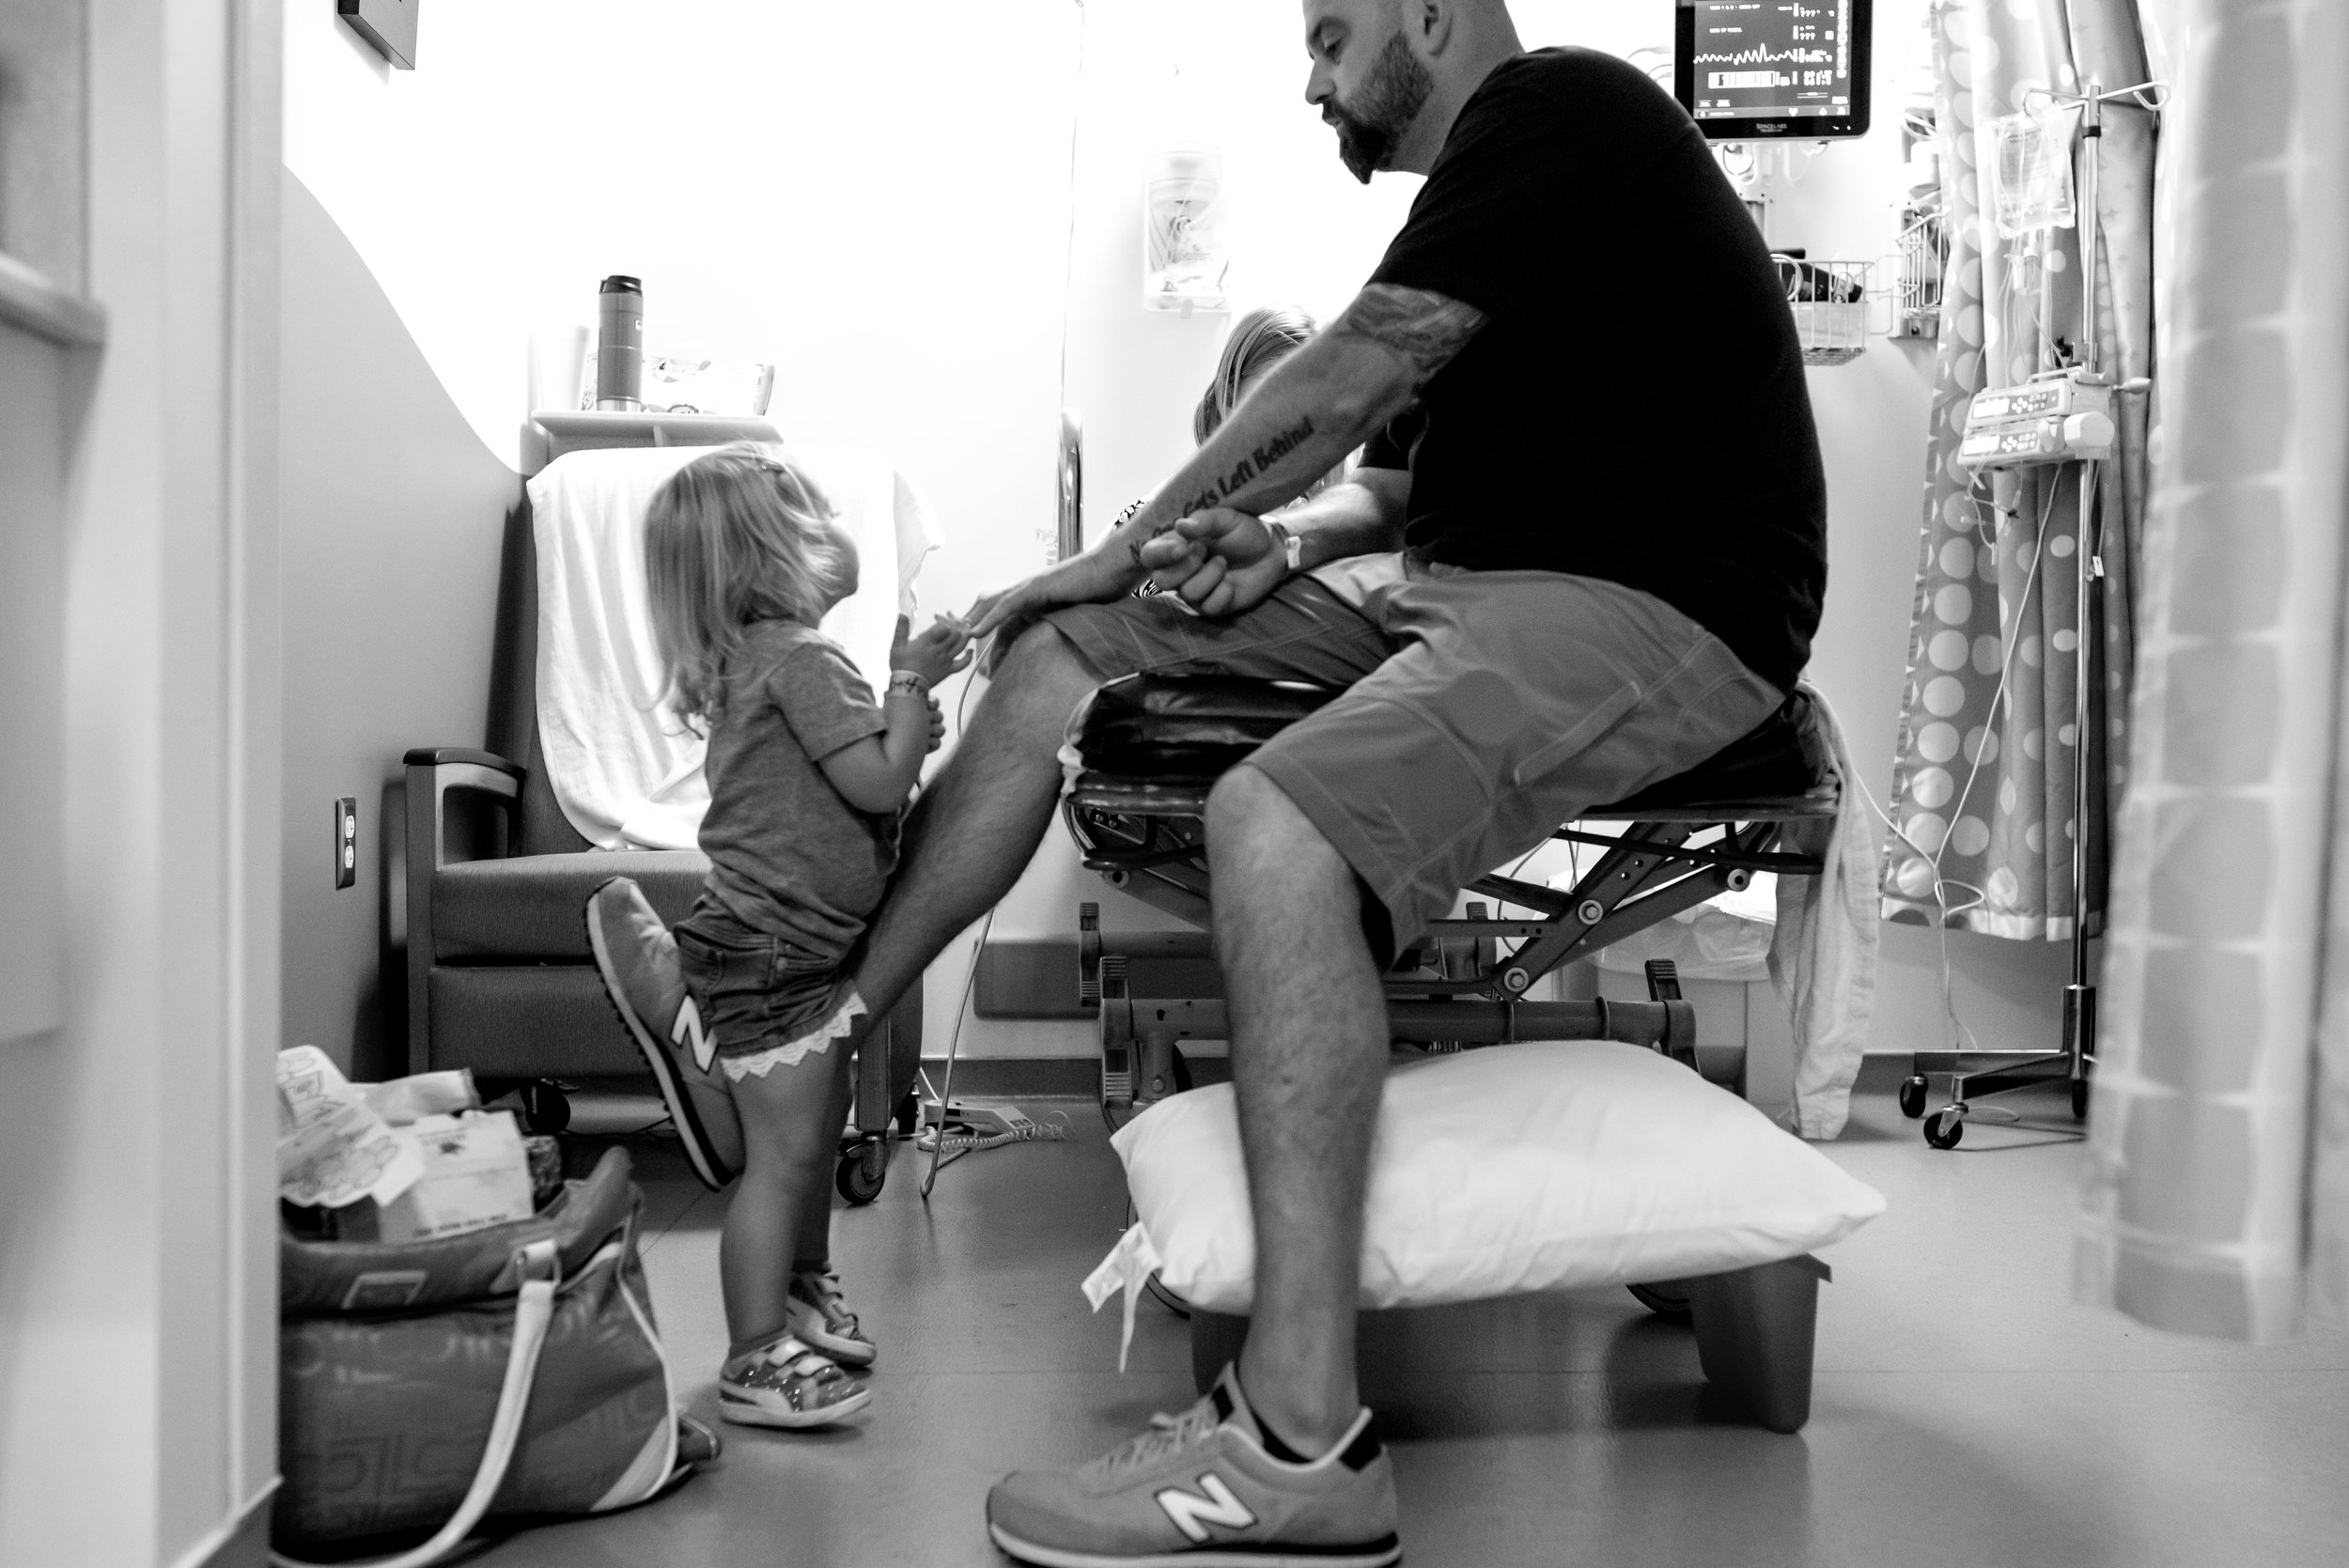 Dad plays with daughters in hospital